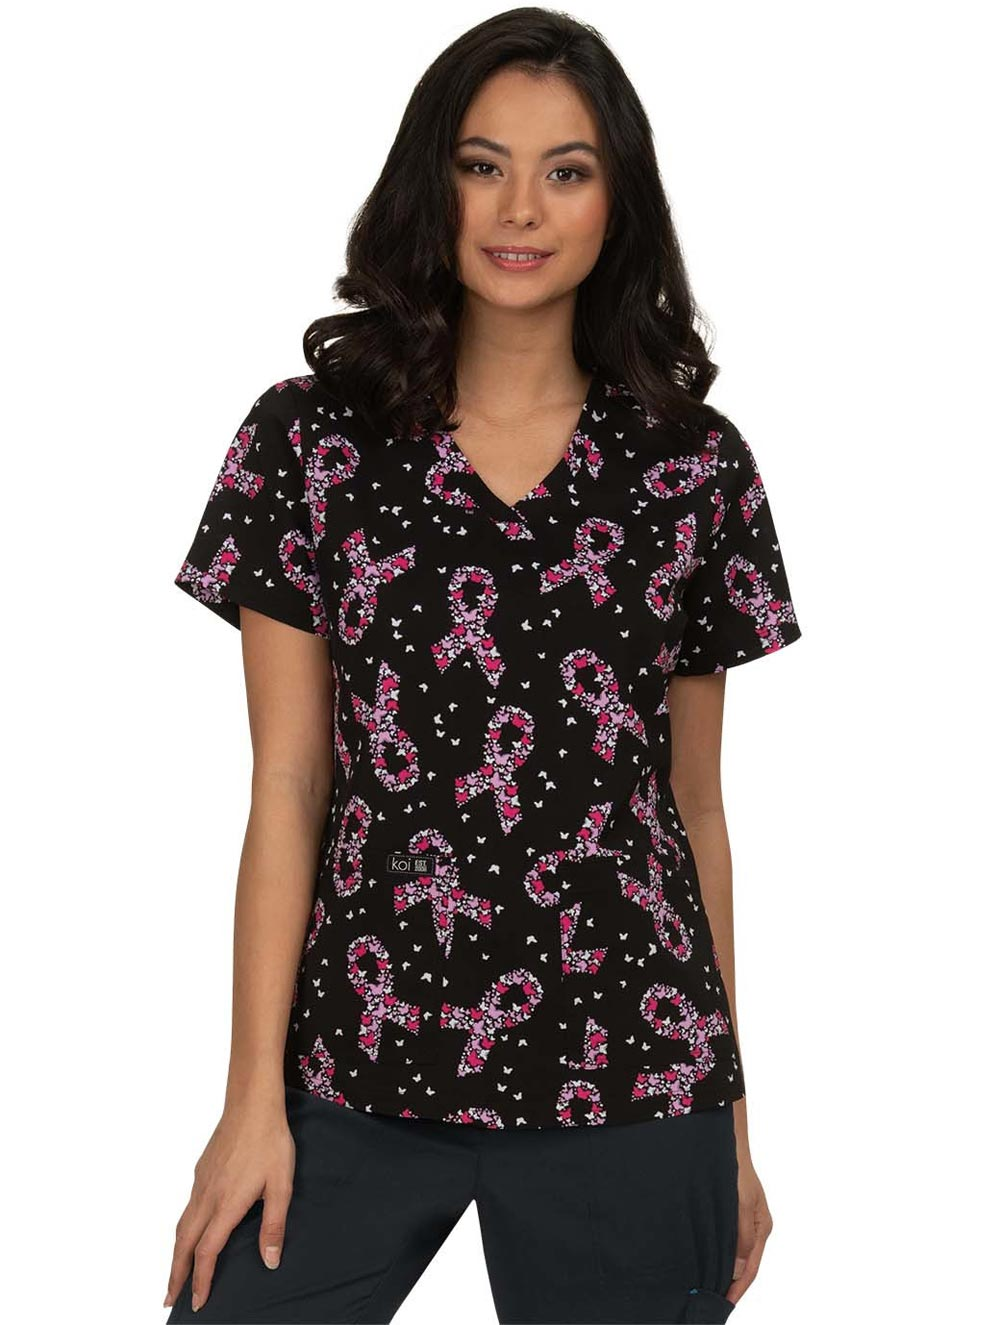 'Leslie' Breast Cancer Awareness Butterfly Print Scrub Top